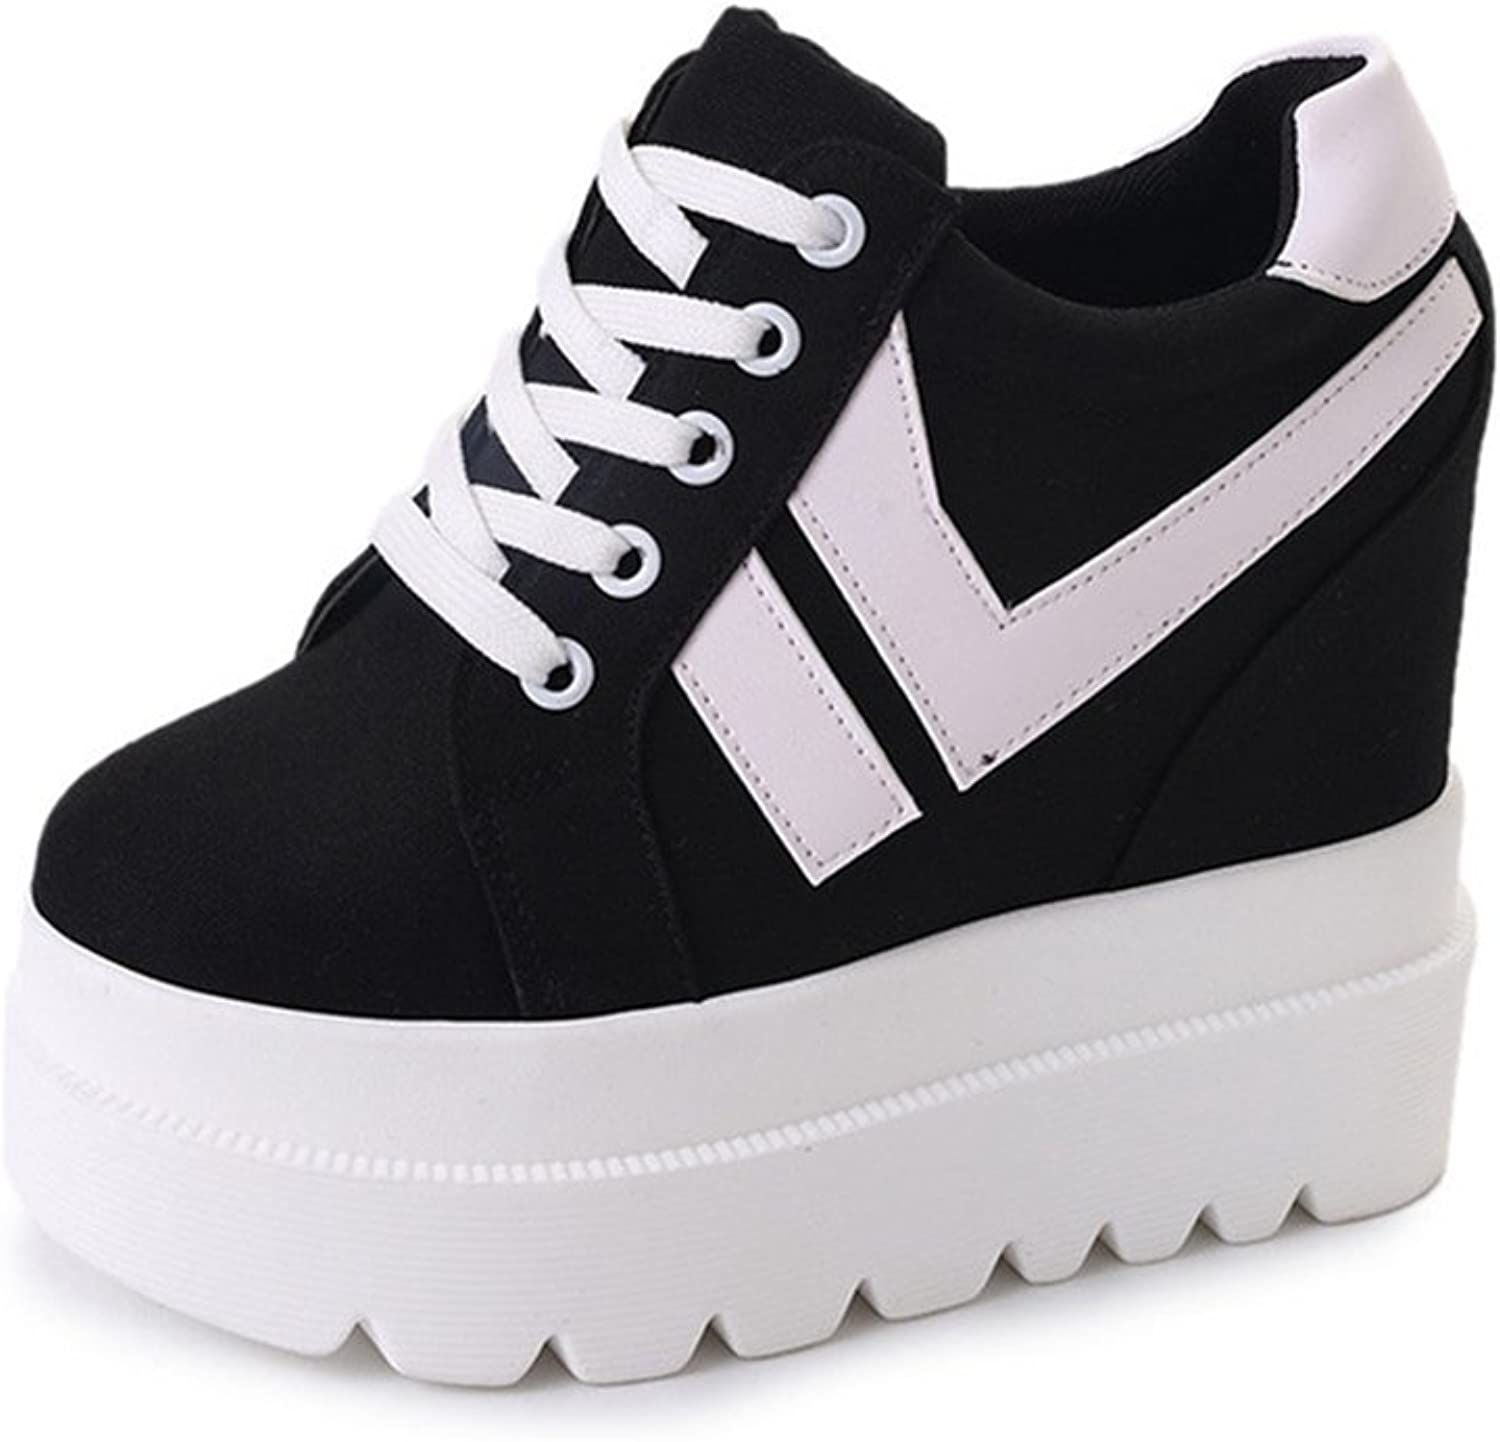 CYBLING Womens Height Increasing shoes Casual High Heel Fashion Sneakers